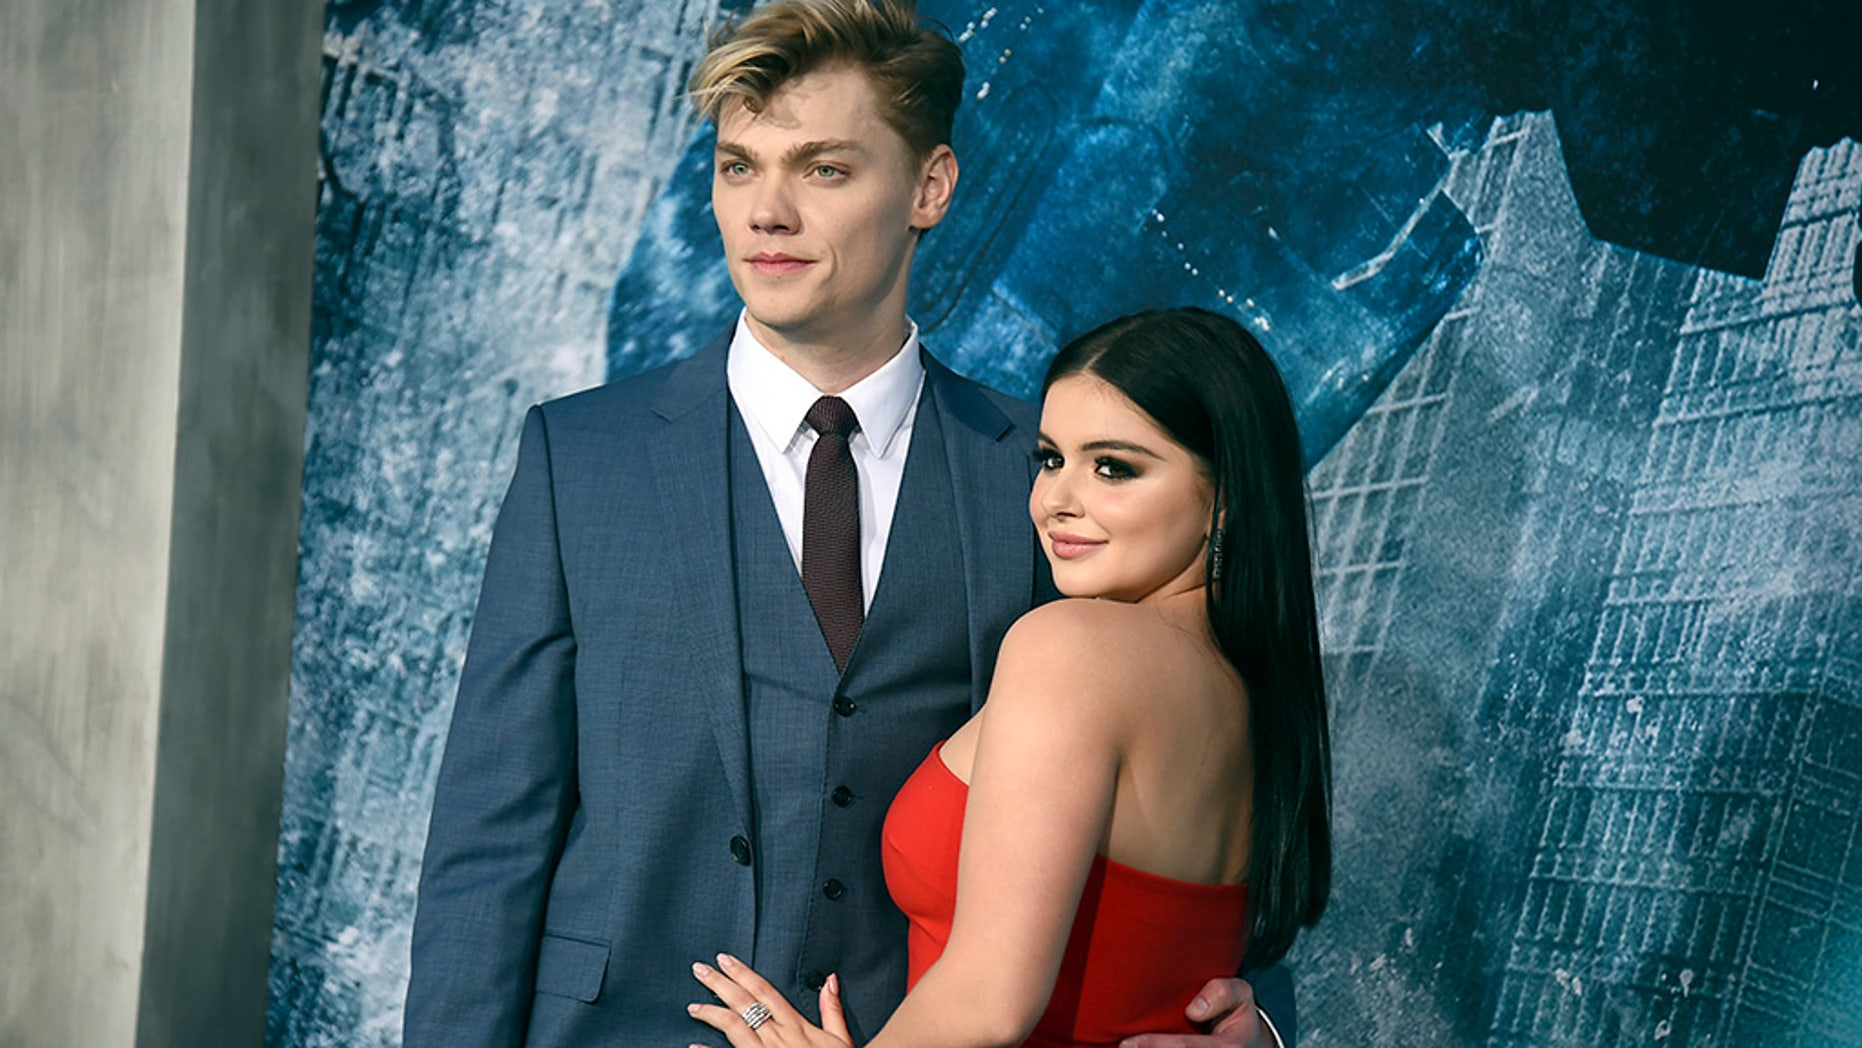 """Modern Family"" actress Ariel Winter with her boyfriend, actor Levi Meaden."